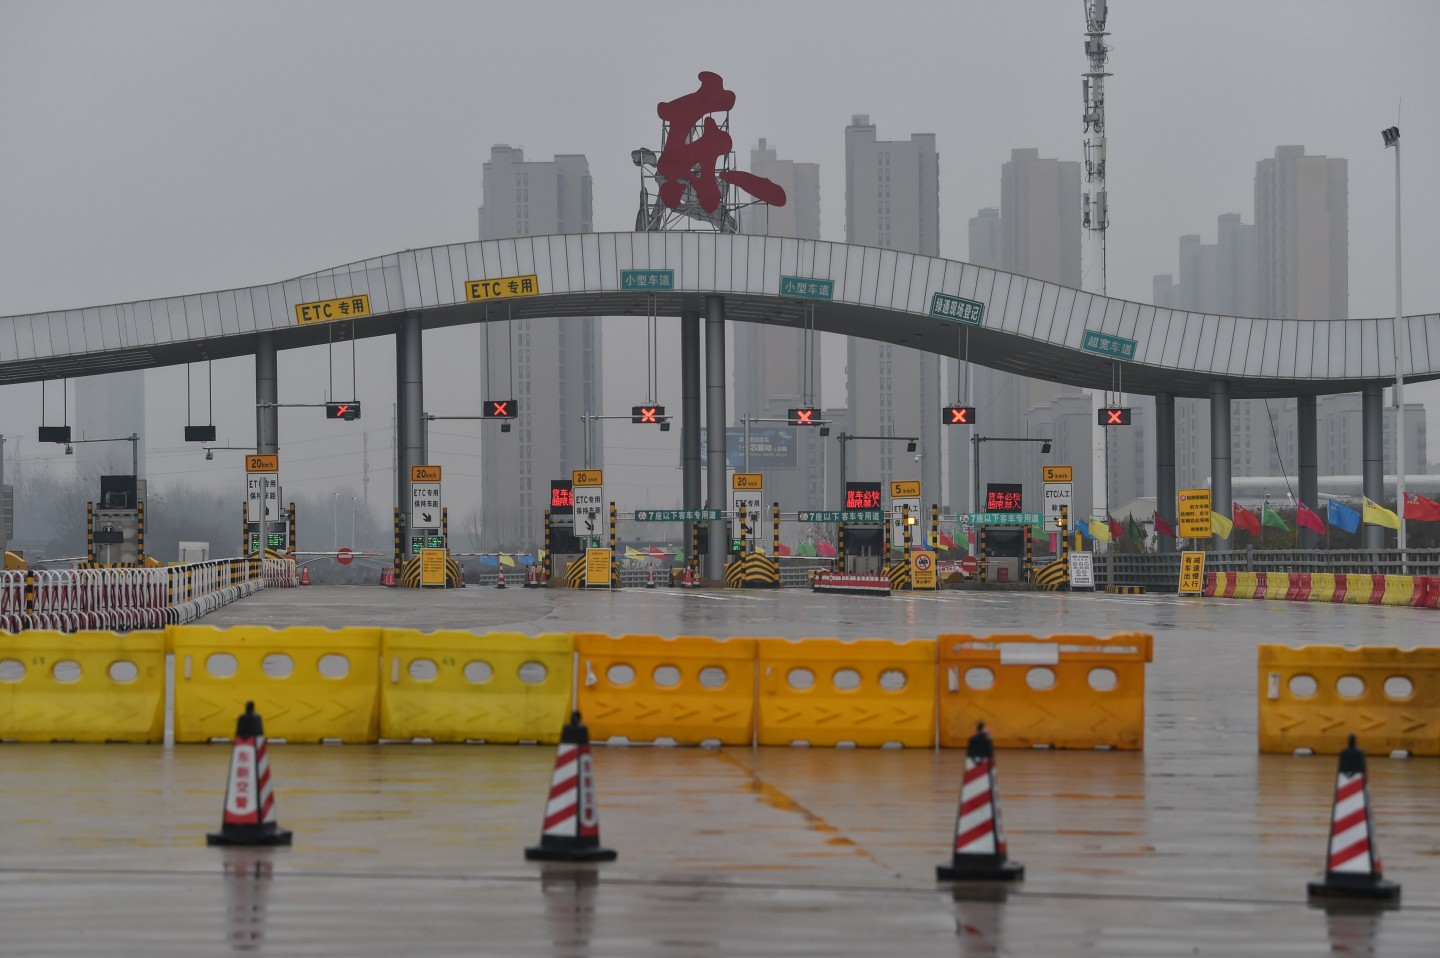 A general view shows one of the roads blocked by the police to restrict people from leaving Wuhan city. Millions spent their normally festive Lunar New Year holiday under lockdown. (Hector Retamal/AFP)